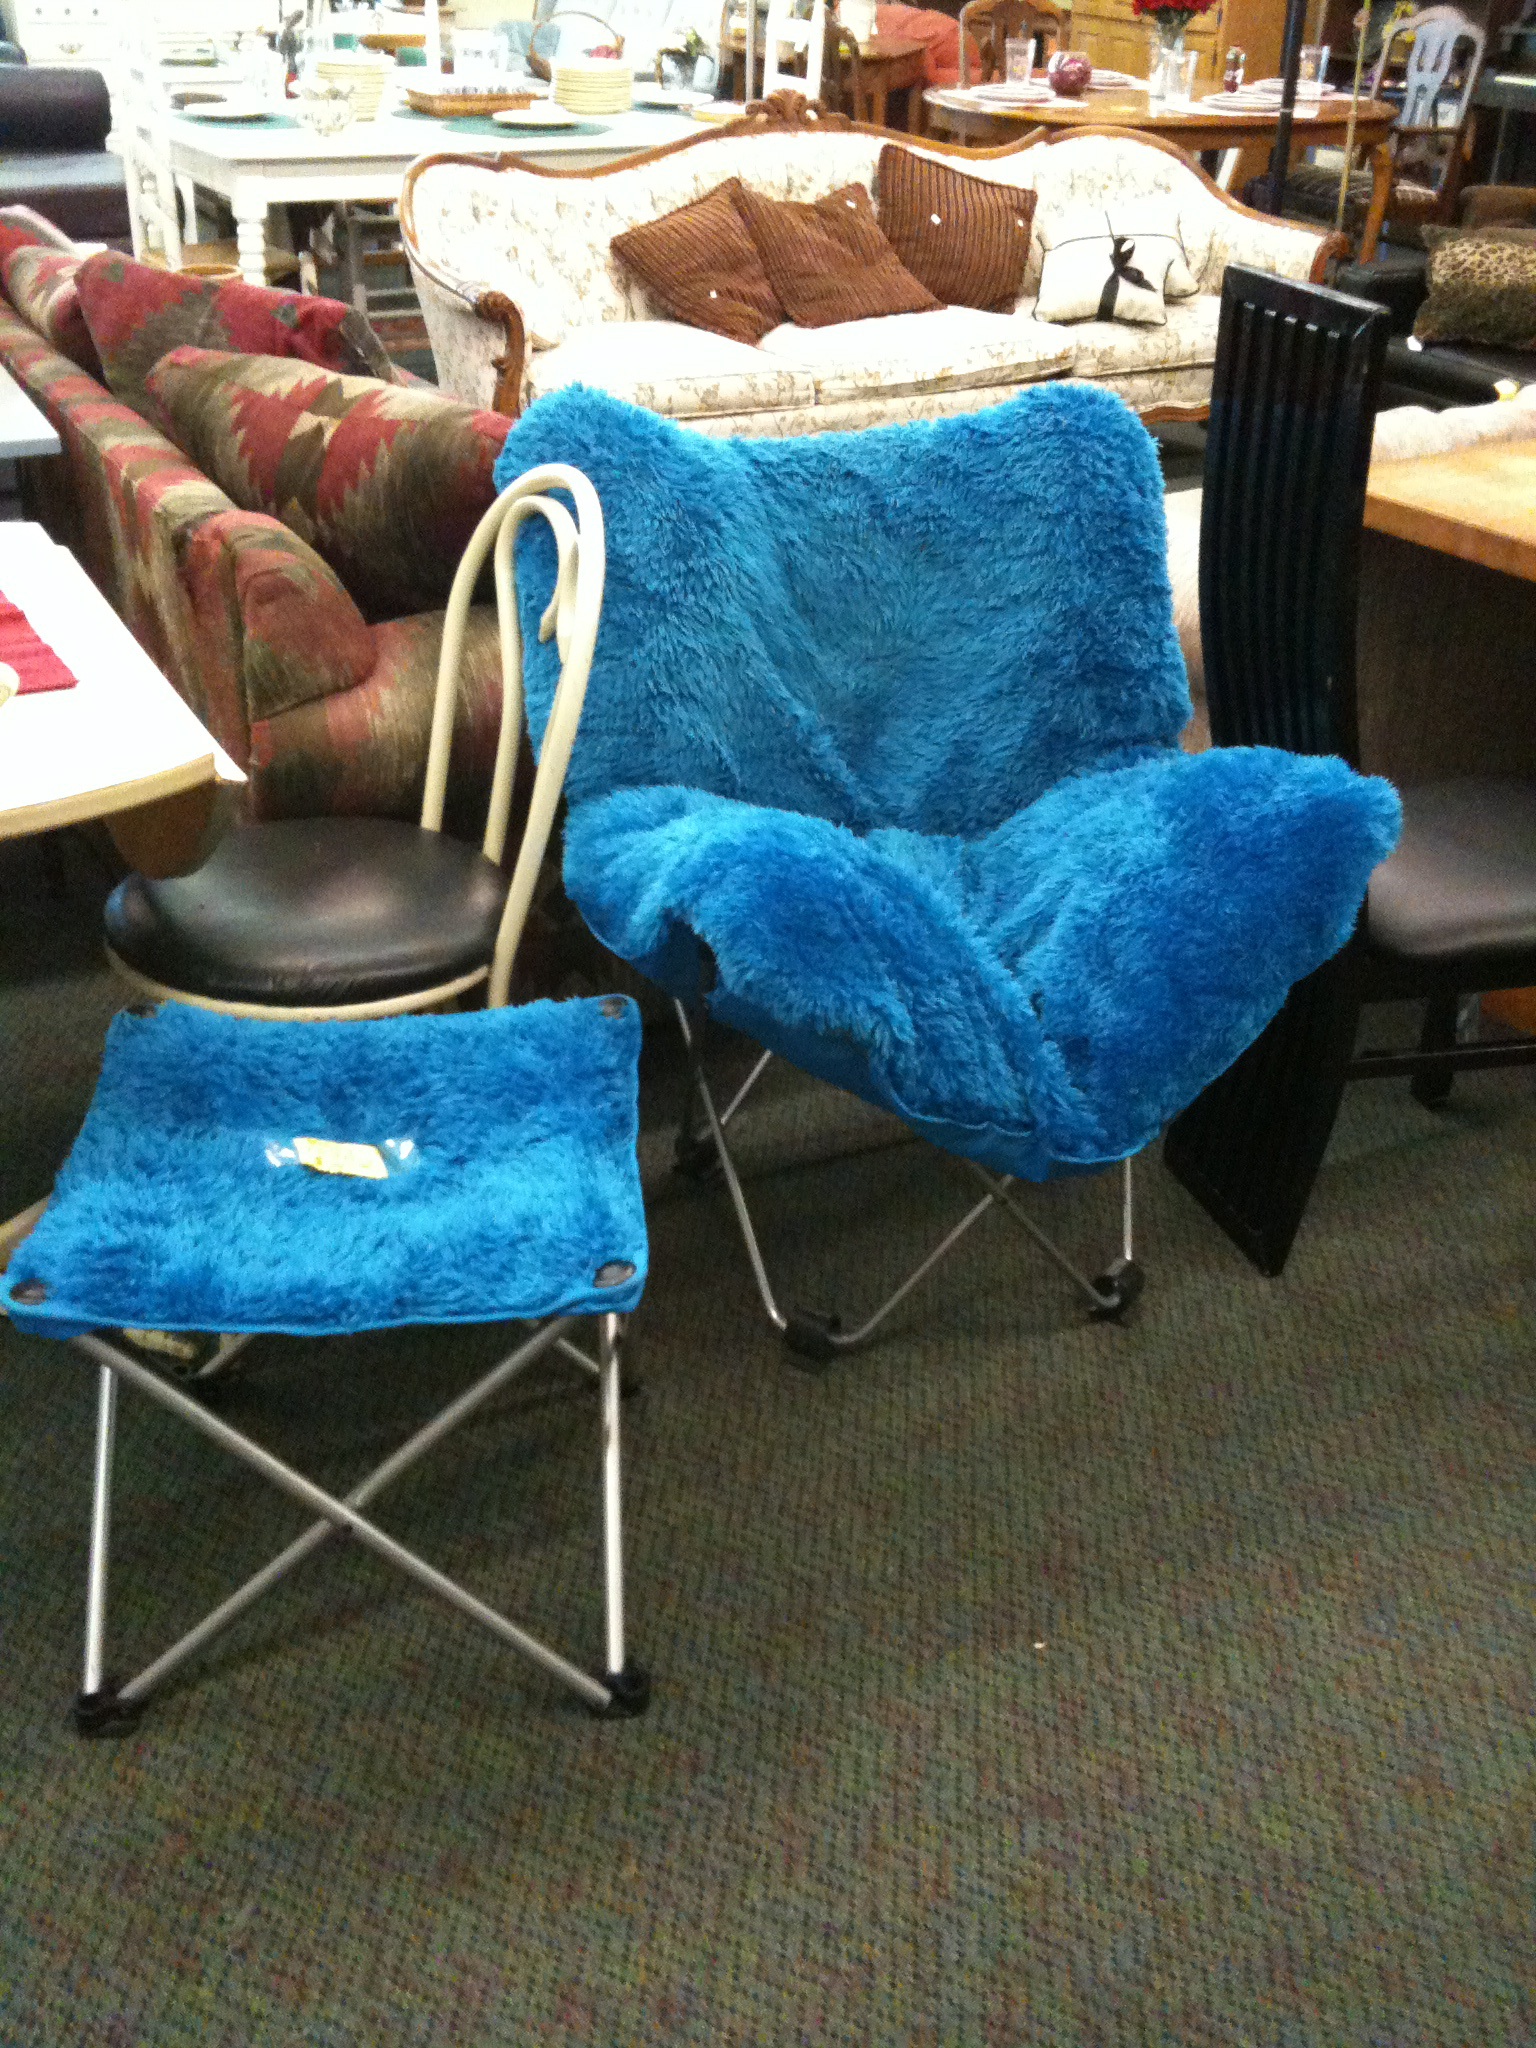 cookie monster chair heavy duty folding lawn chairs i think know what happened to the